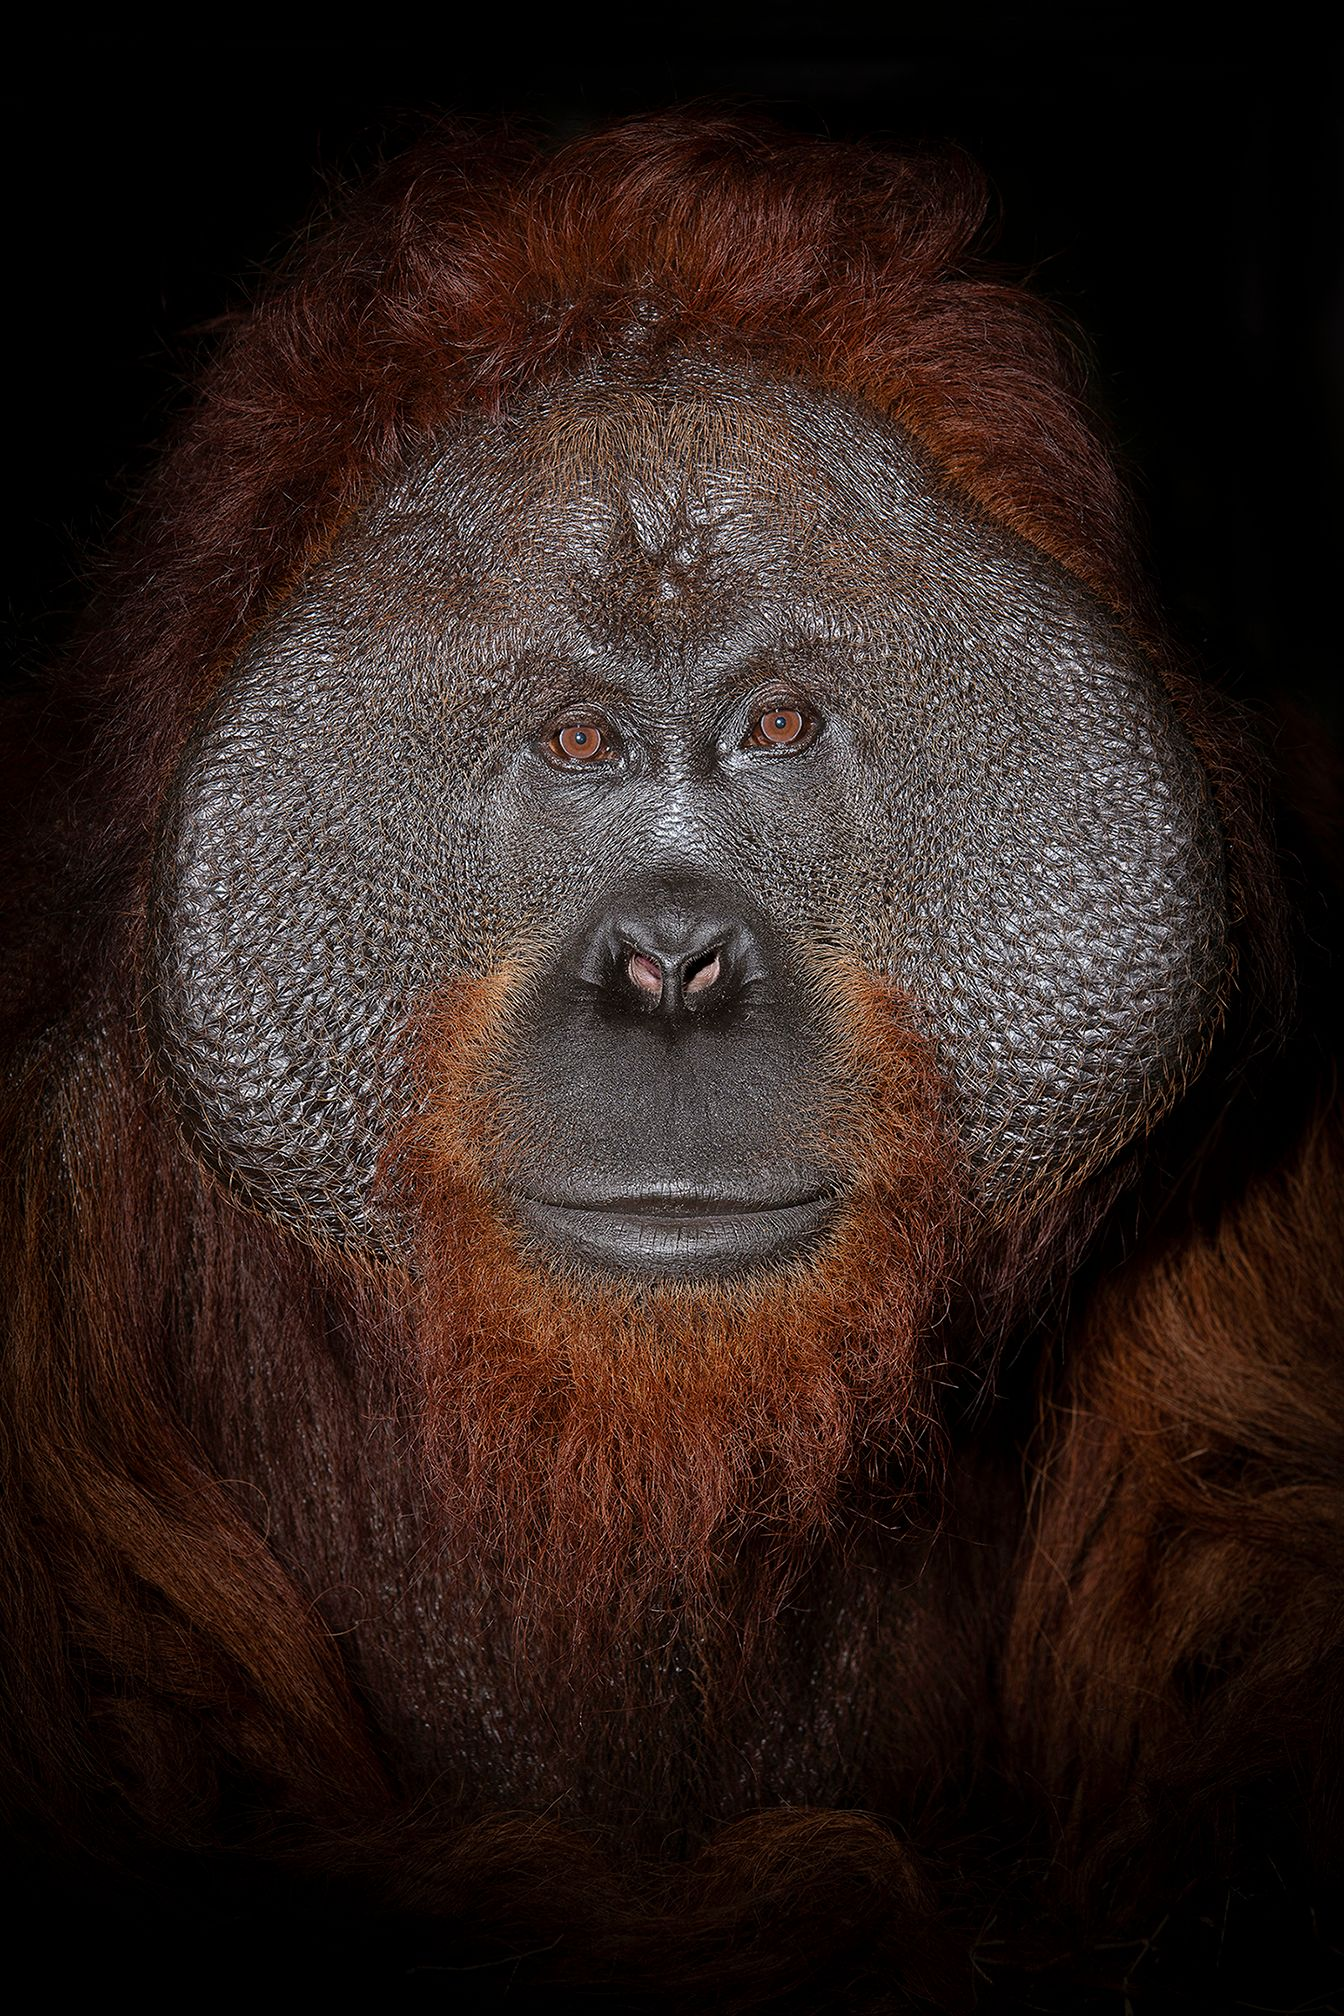 orang_05_USA_FL_Center_for_Great_Apes_Harry_6437.jpg